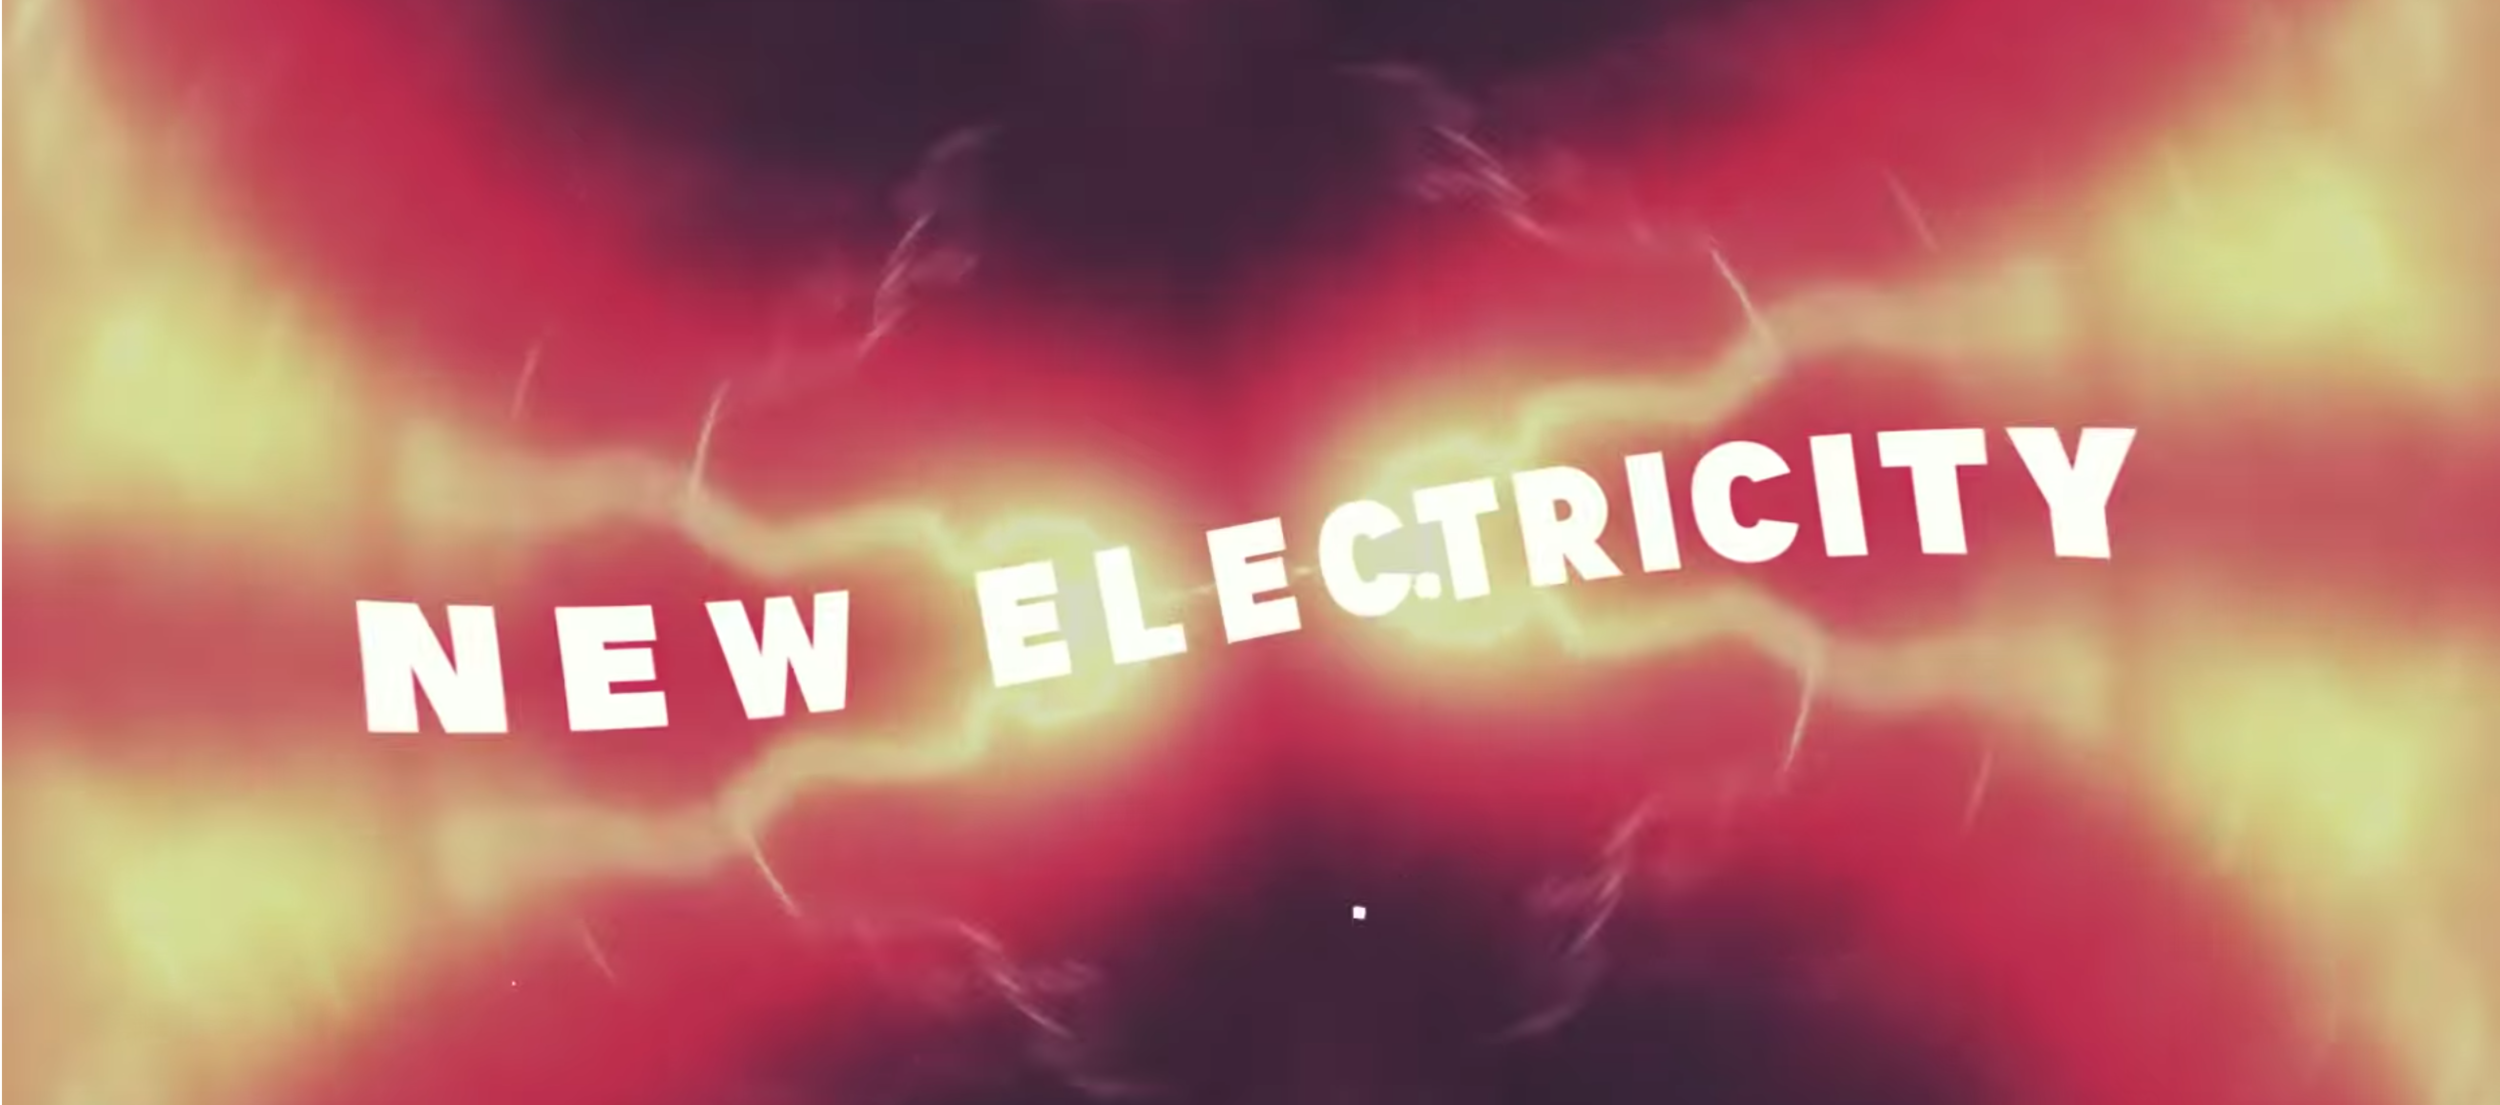 Unsecret // New Electricity